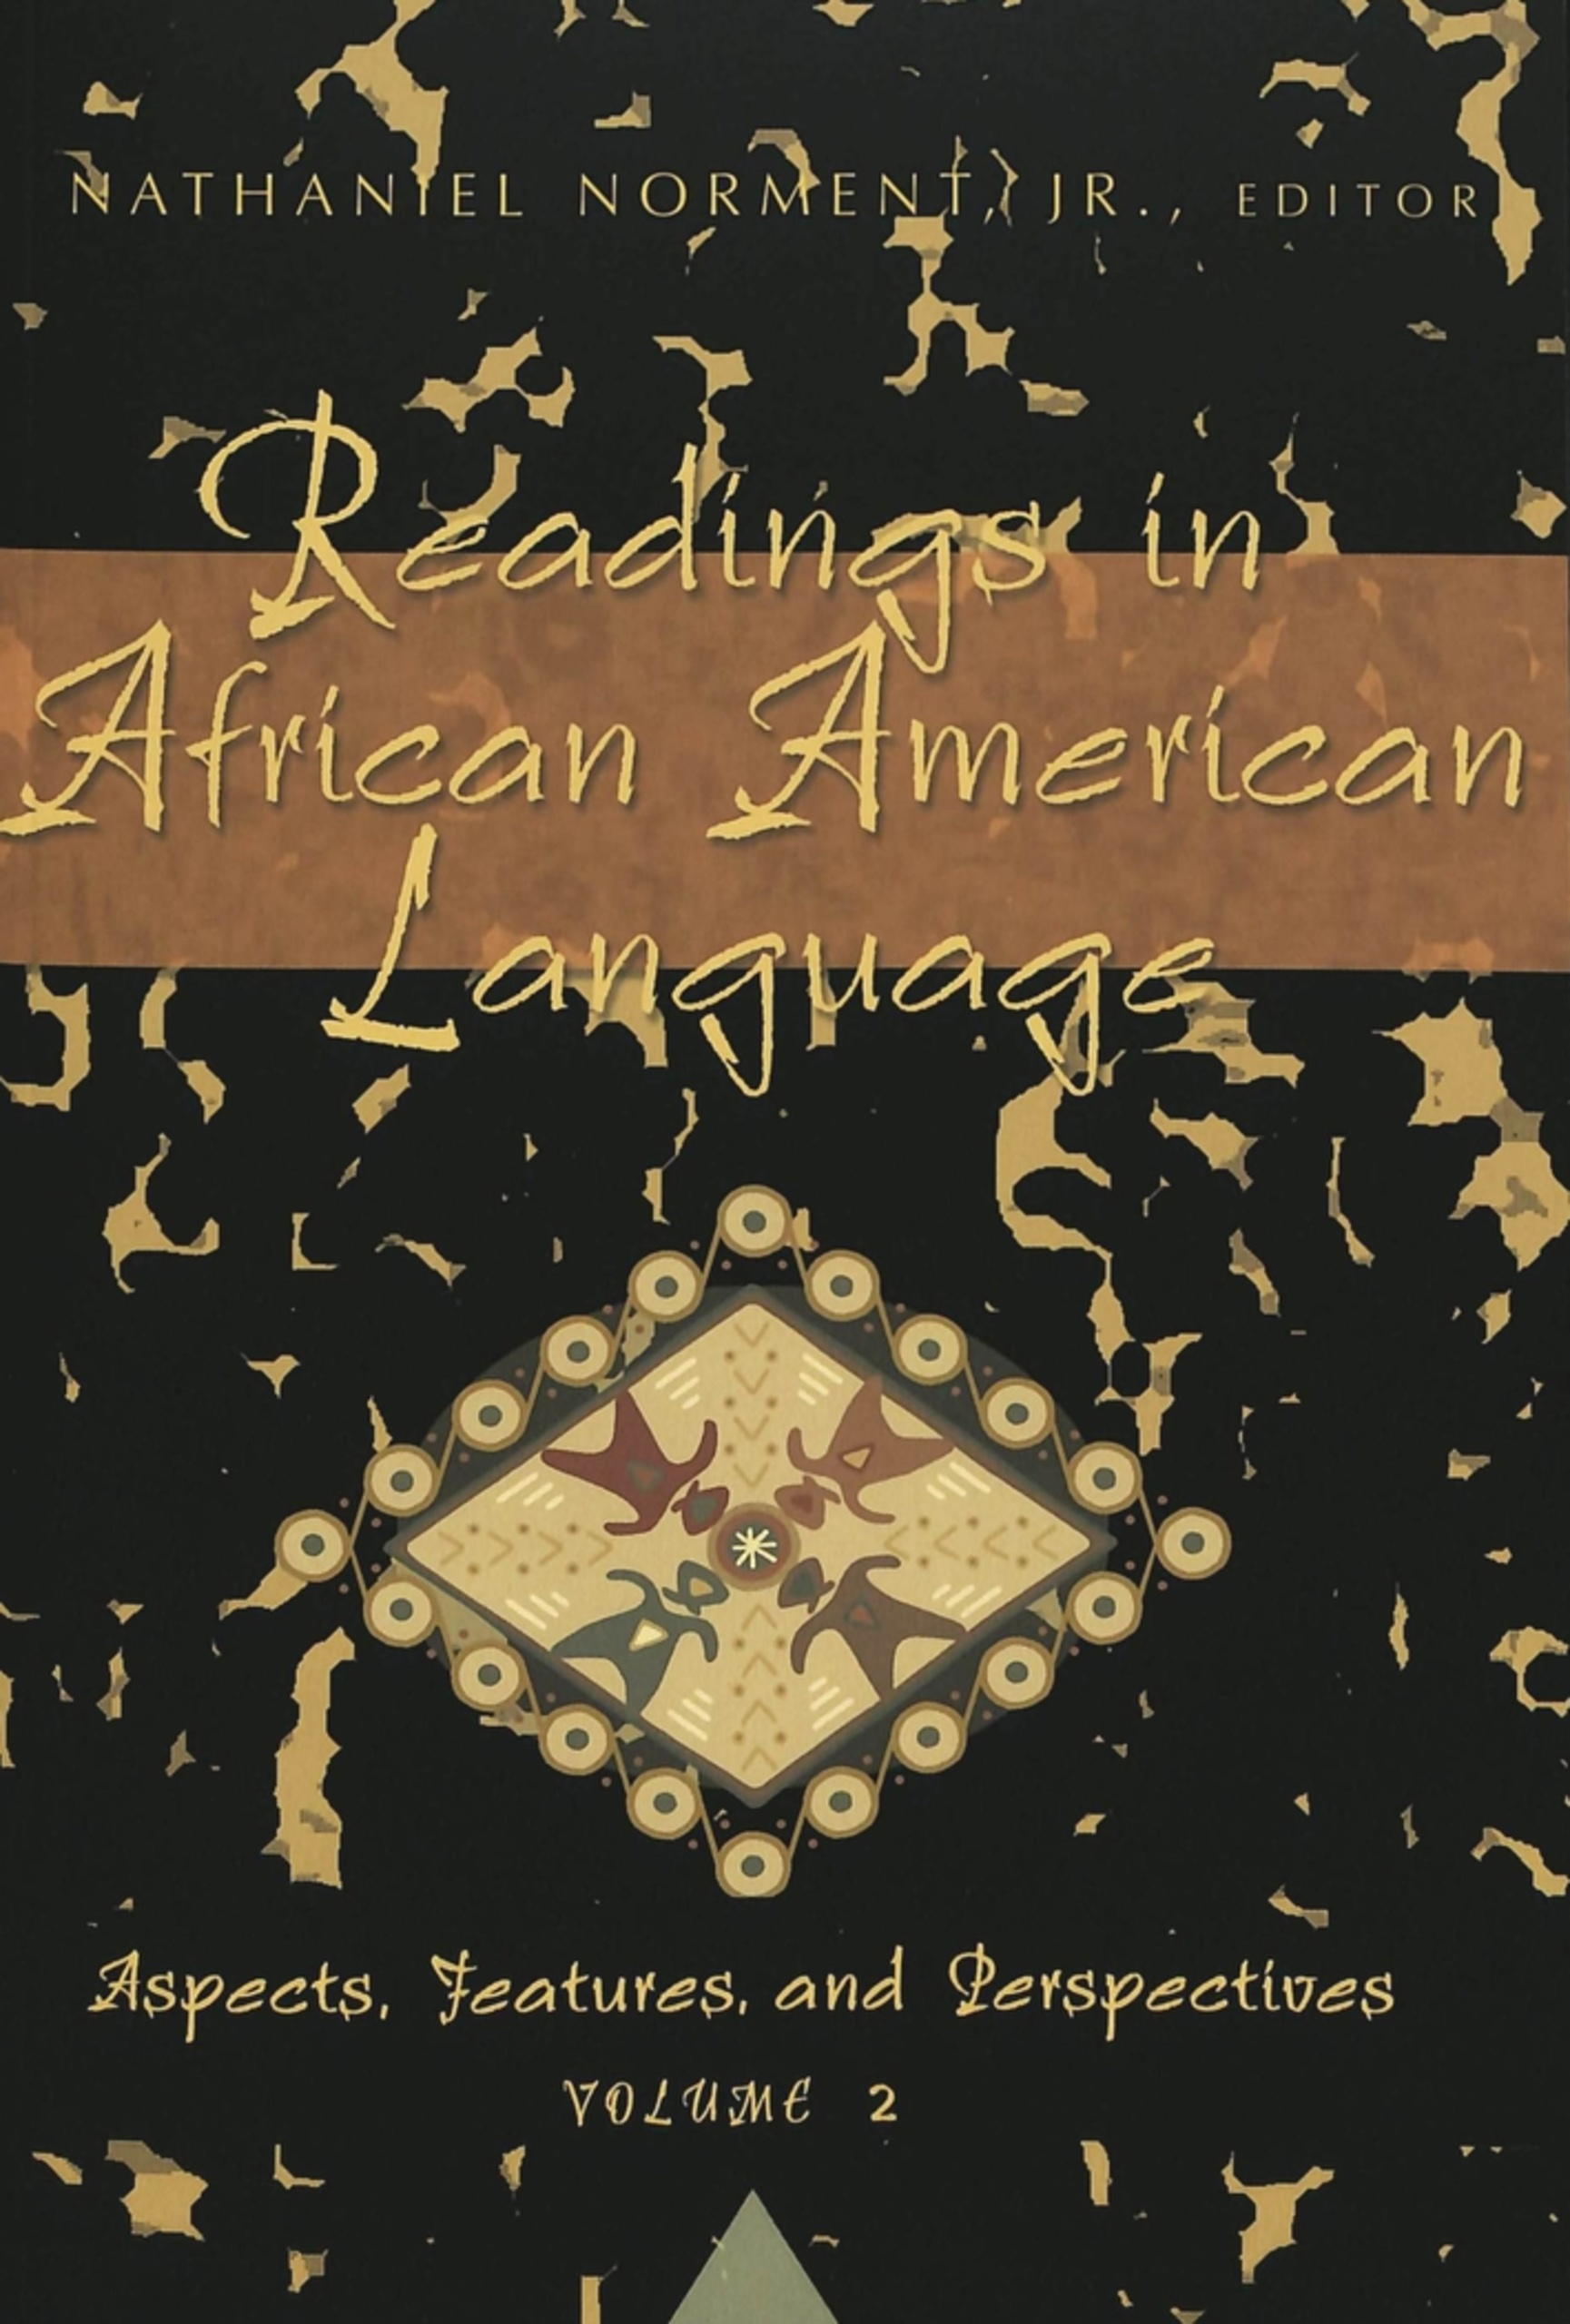 Title: Readings in African American Language